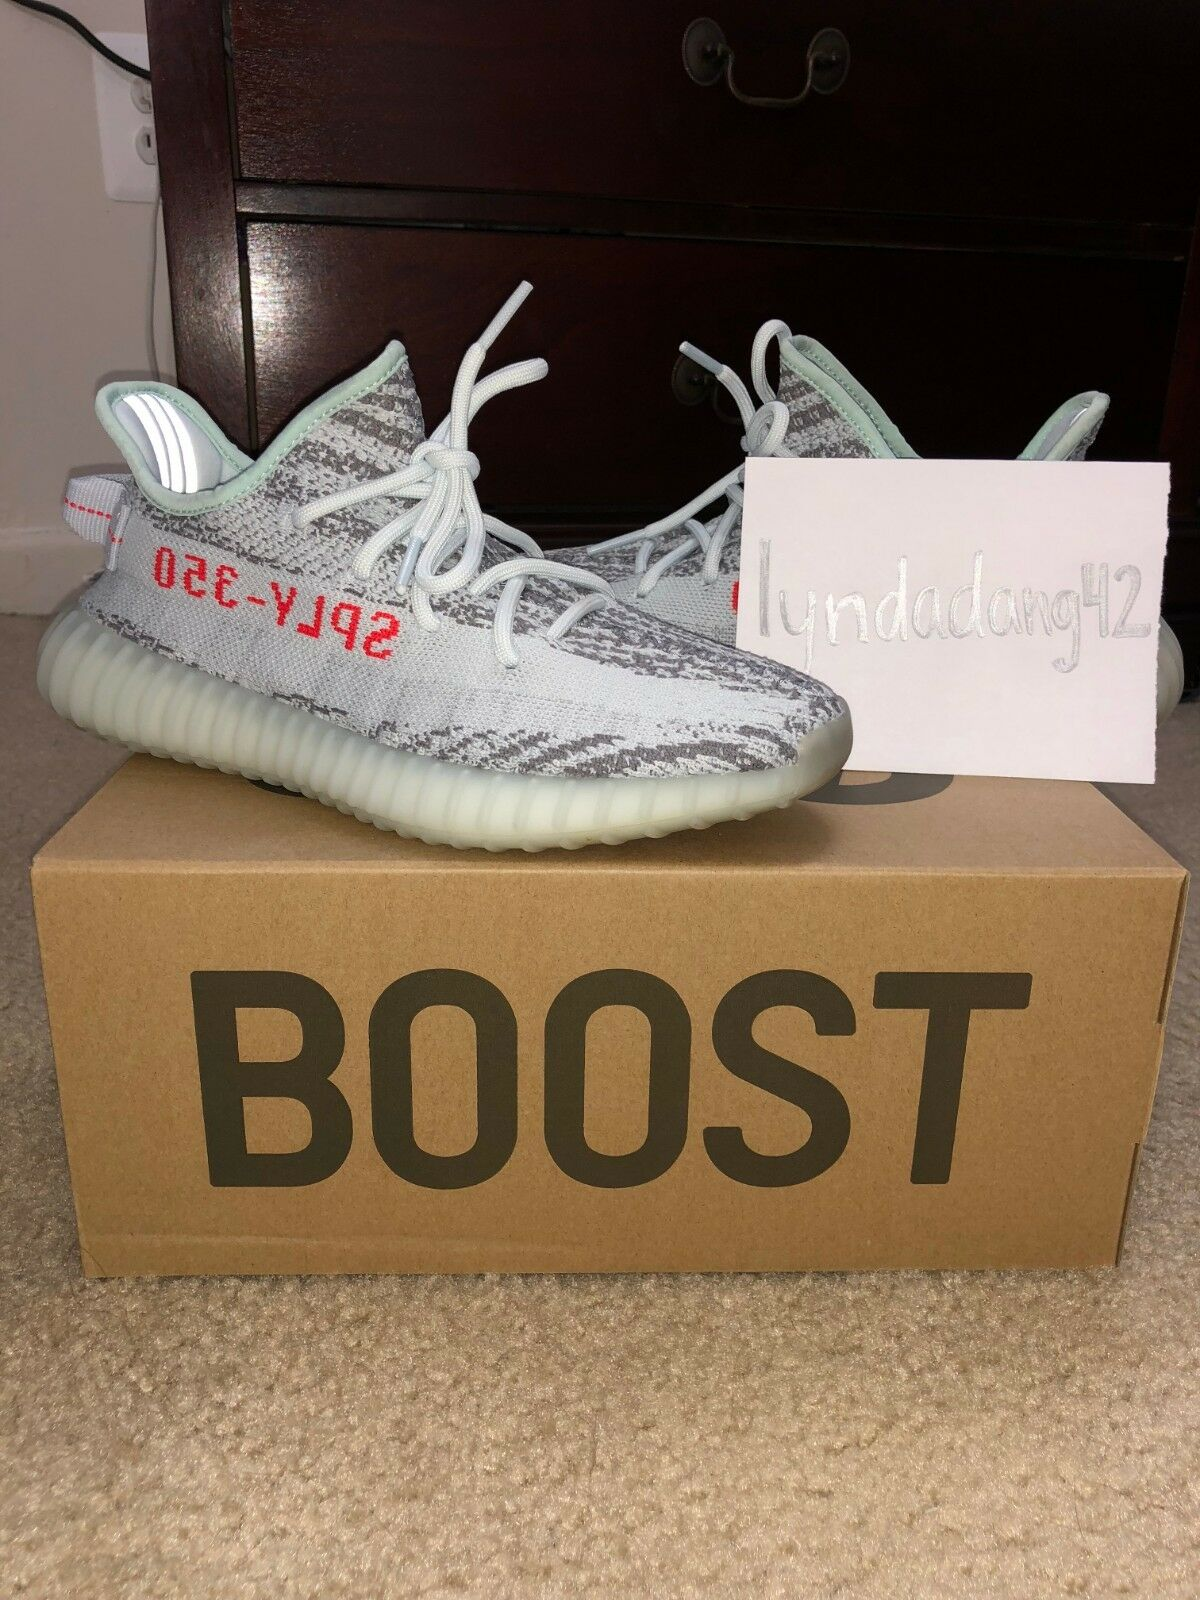 ADIDAS YEEZY BOOST 350 V2 blueE TINT SIZE 7.5 100% AUTHENTIC Conditon  9 10